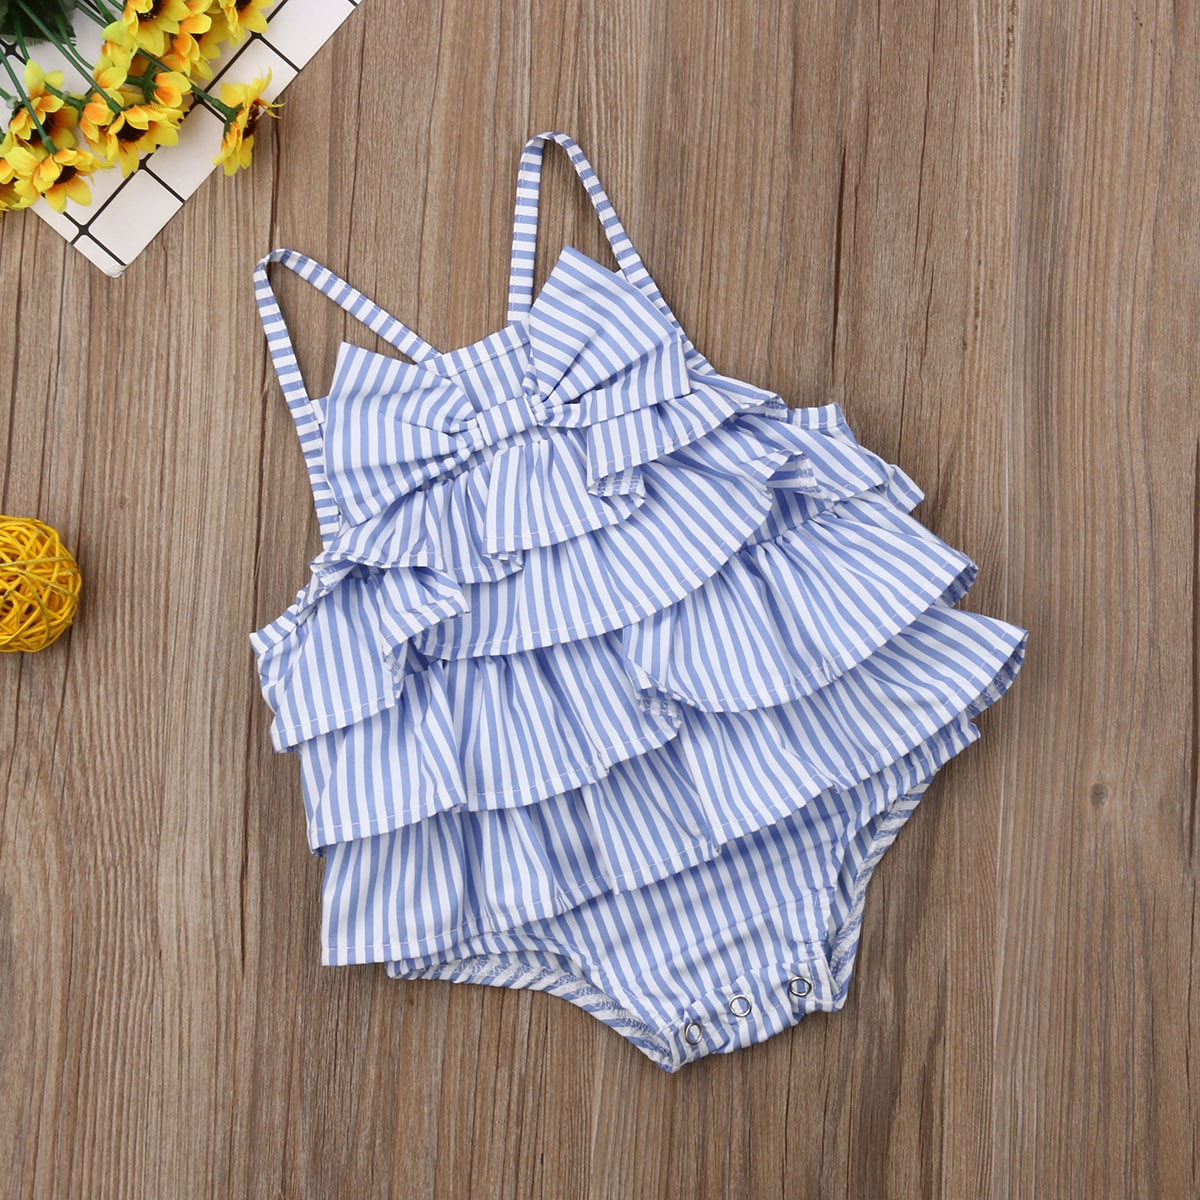 New Product 2019 Summer Baby Girls Striped Bow Sleeveless Ruffle Bodysuit Outfits